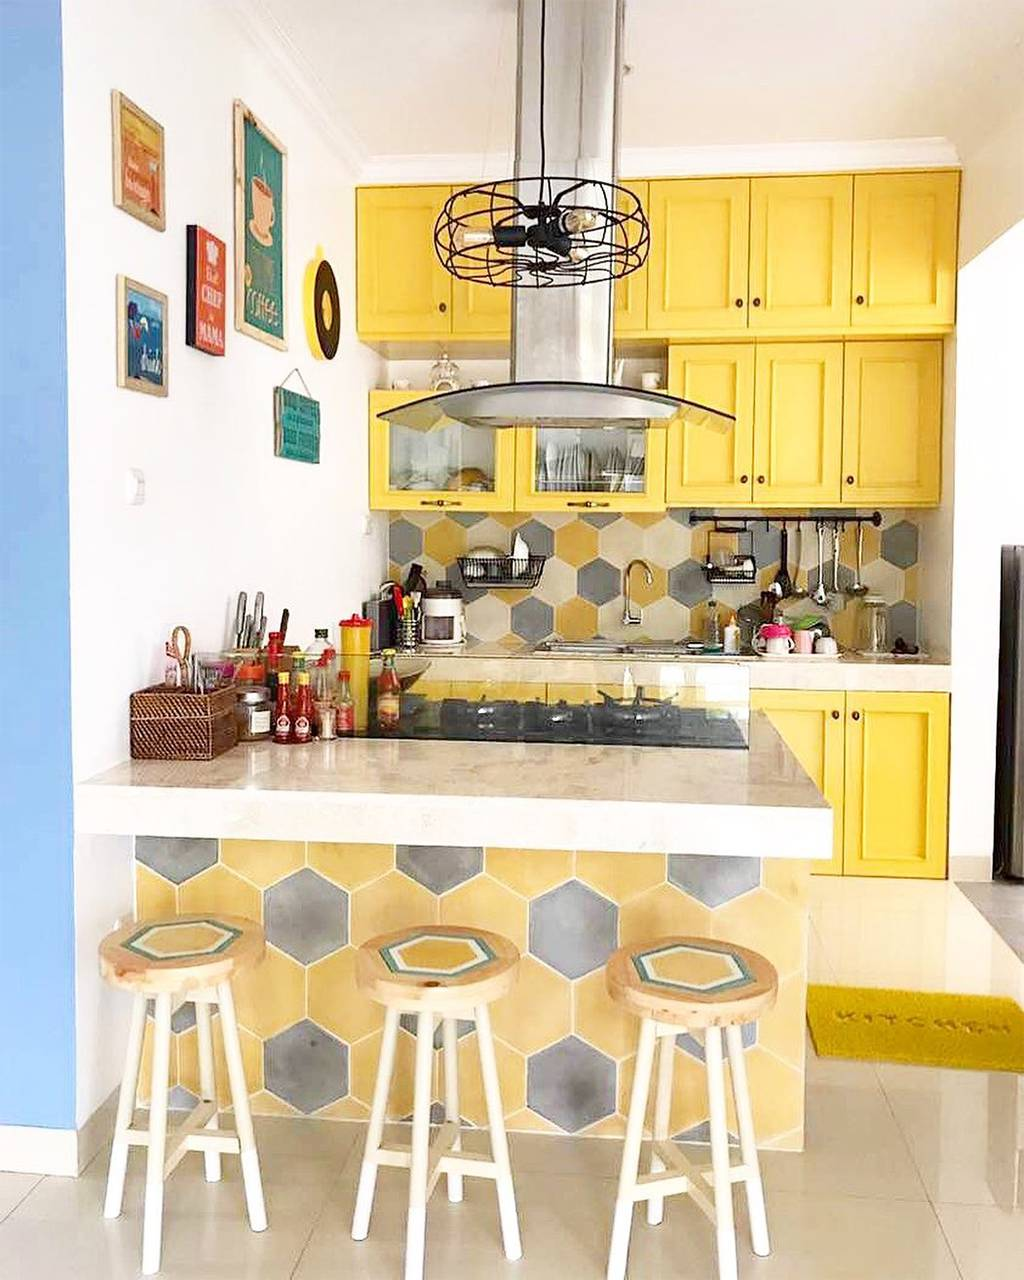 Model Kitchen Set Minimalis Dapur Sempit Warna Kuning Menawan